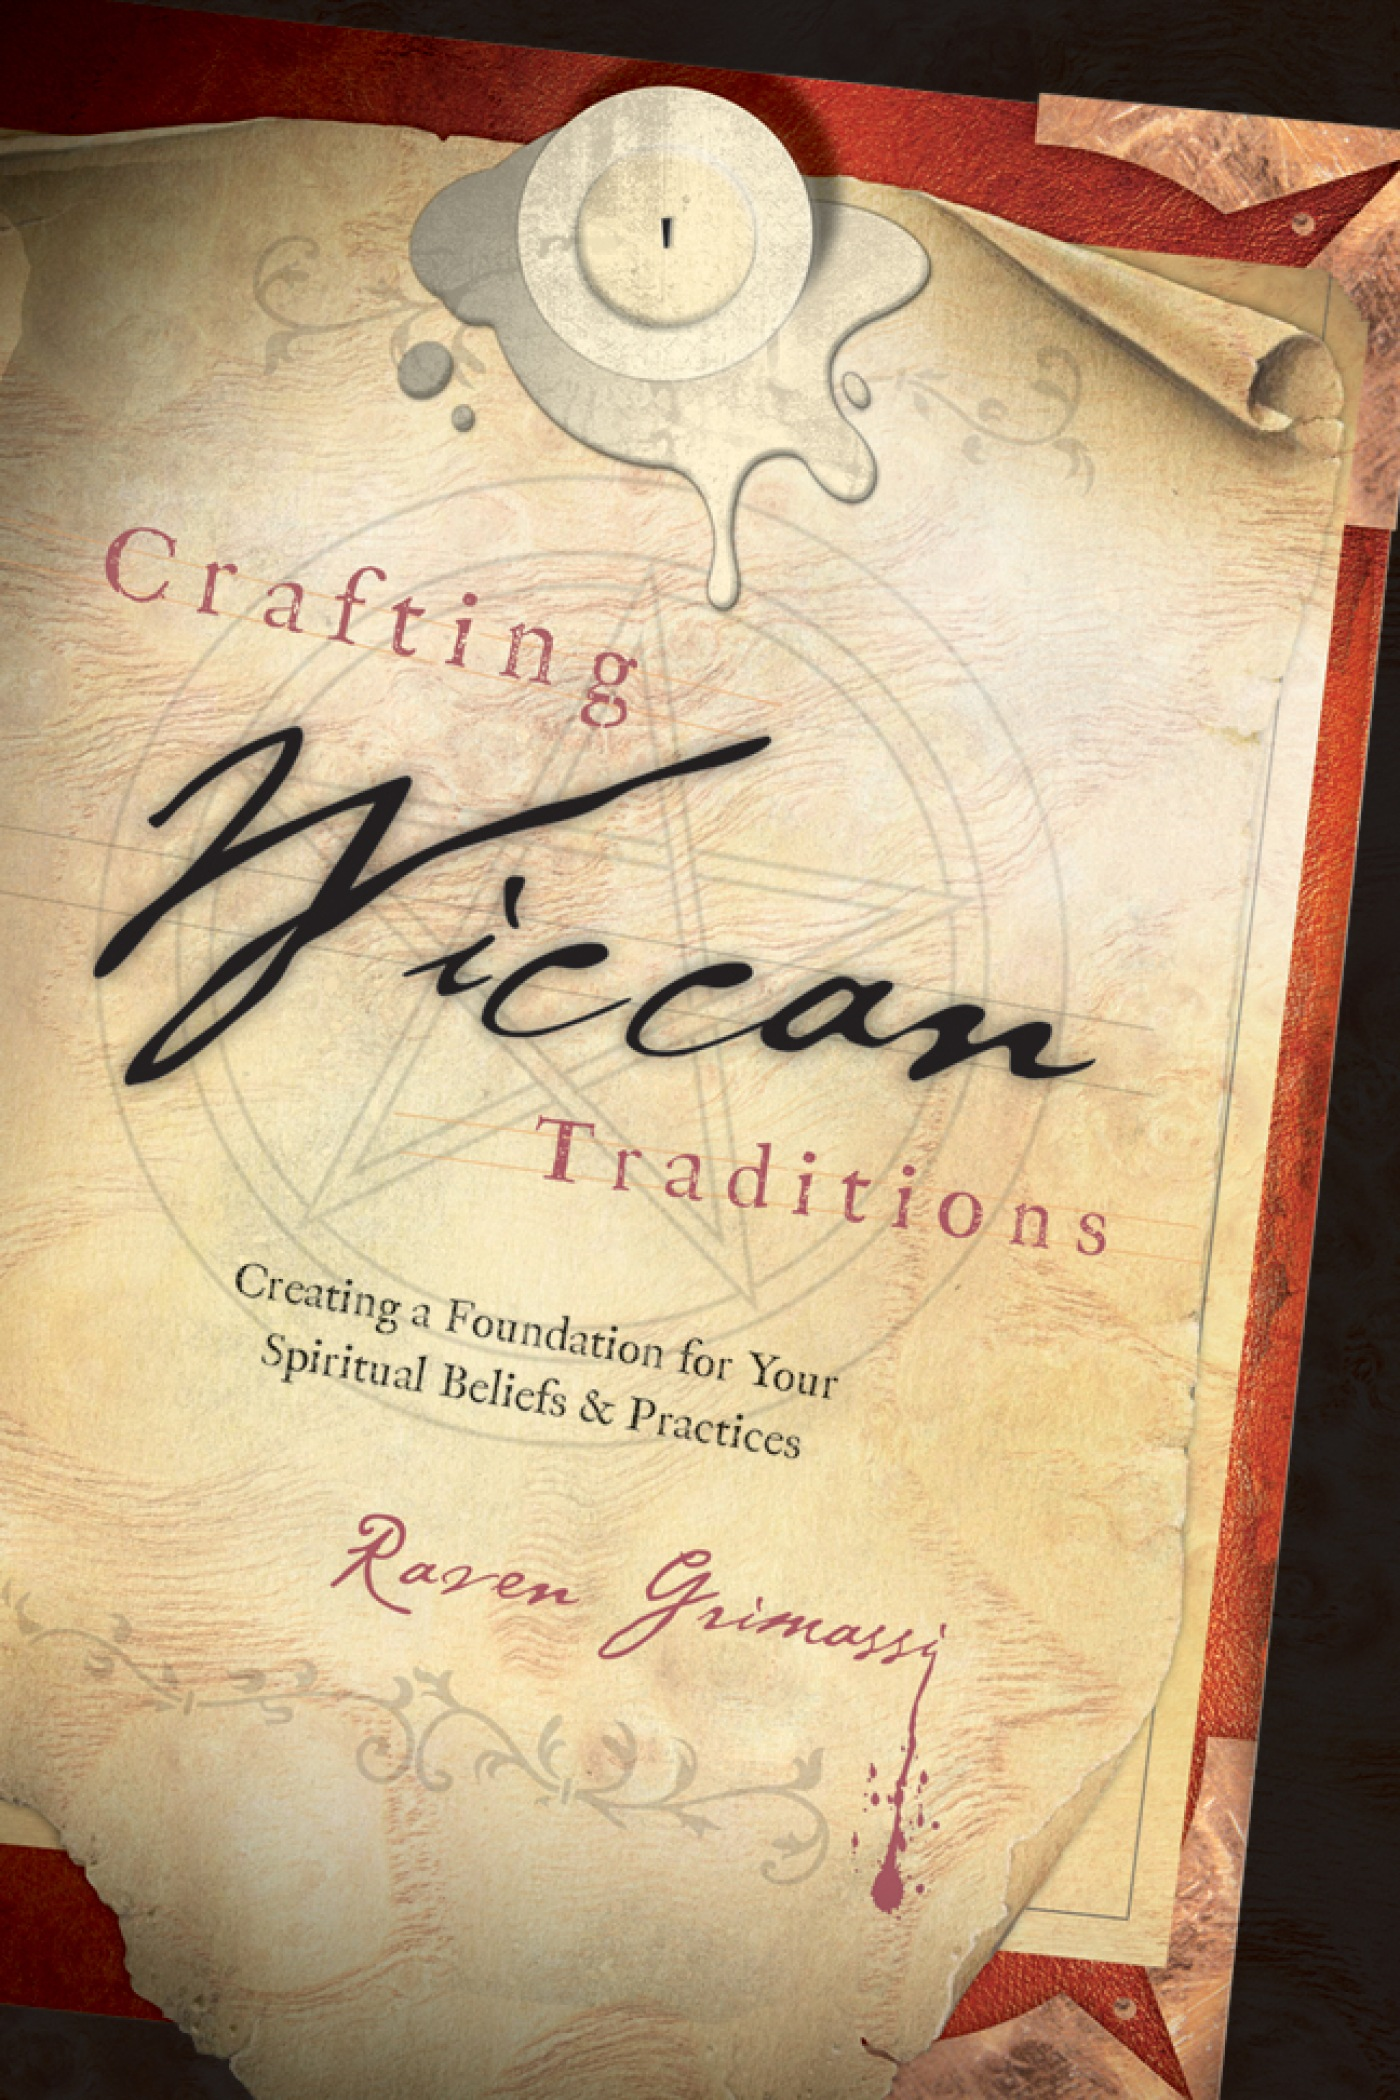 Crafting Wiccan Traditions Creating a Foundation for Your Spiritual Beliefs & Practices